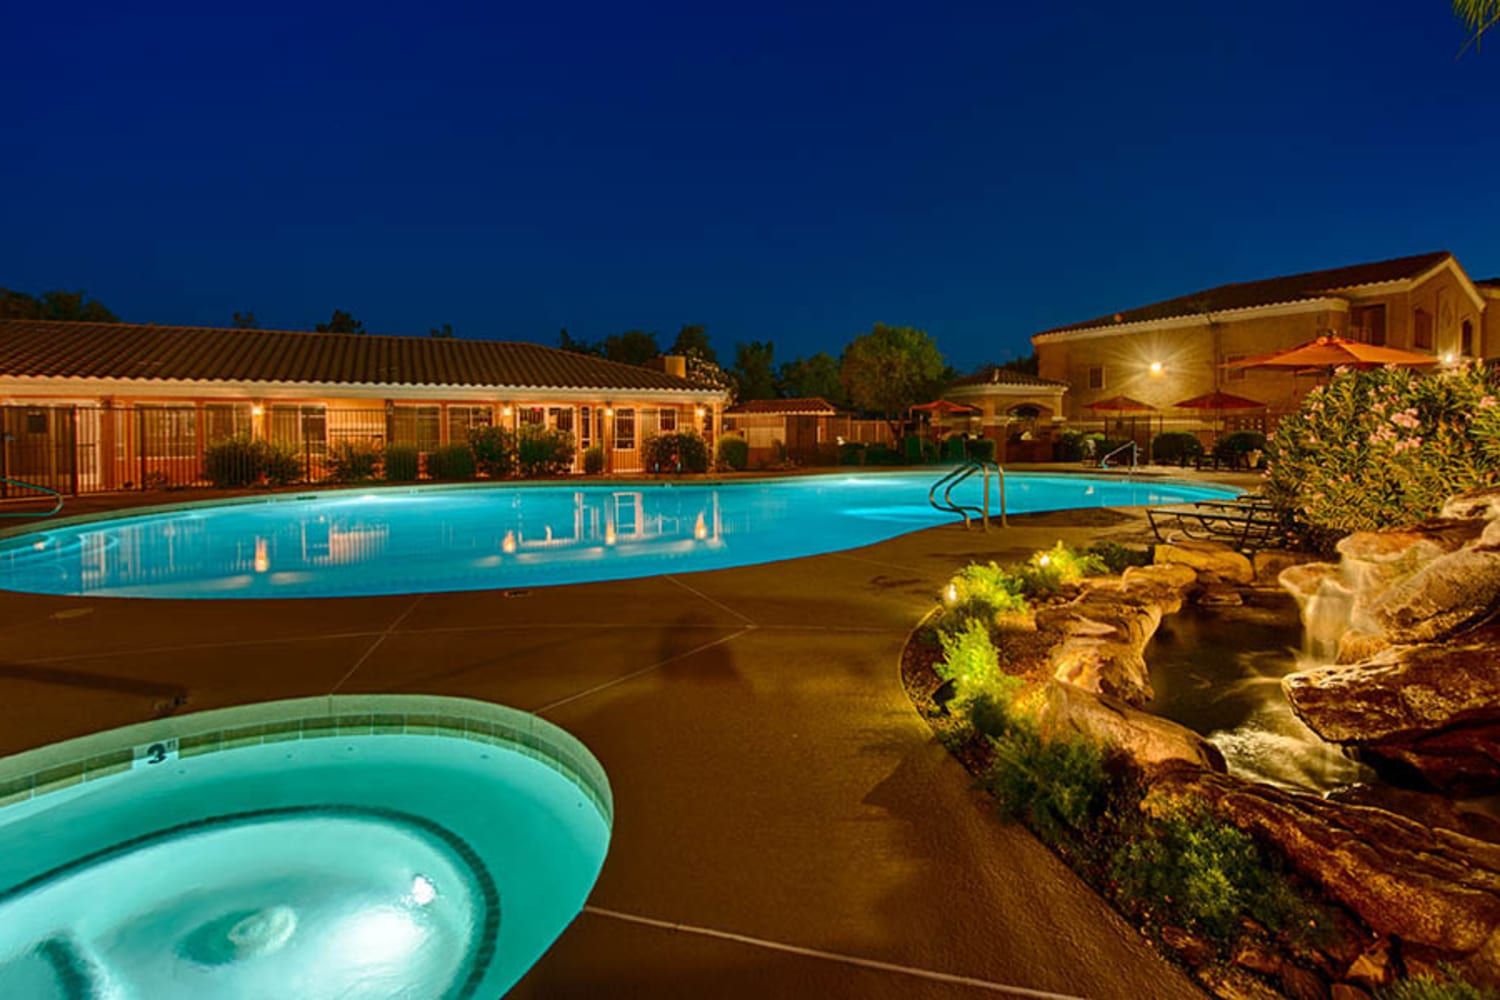 2150 Arizona Ave South in Chandler, Arizona, offers a swimming pool and hot tub